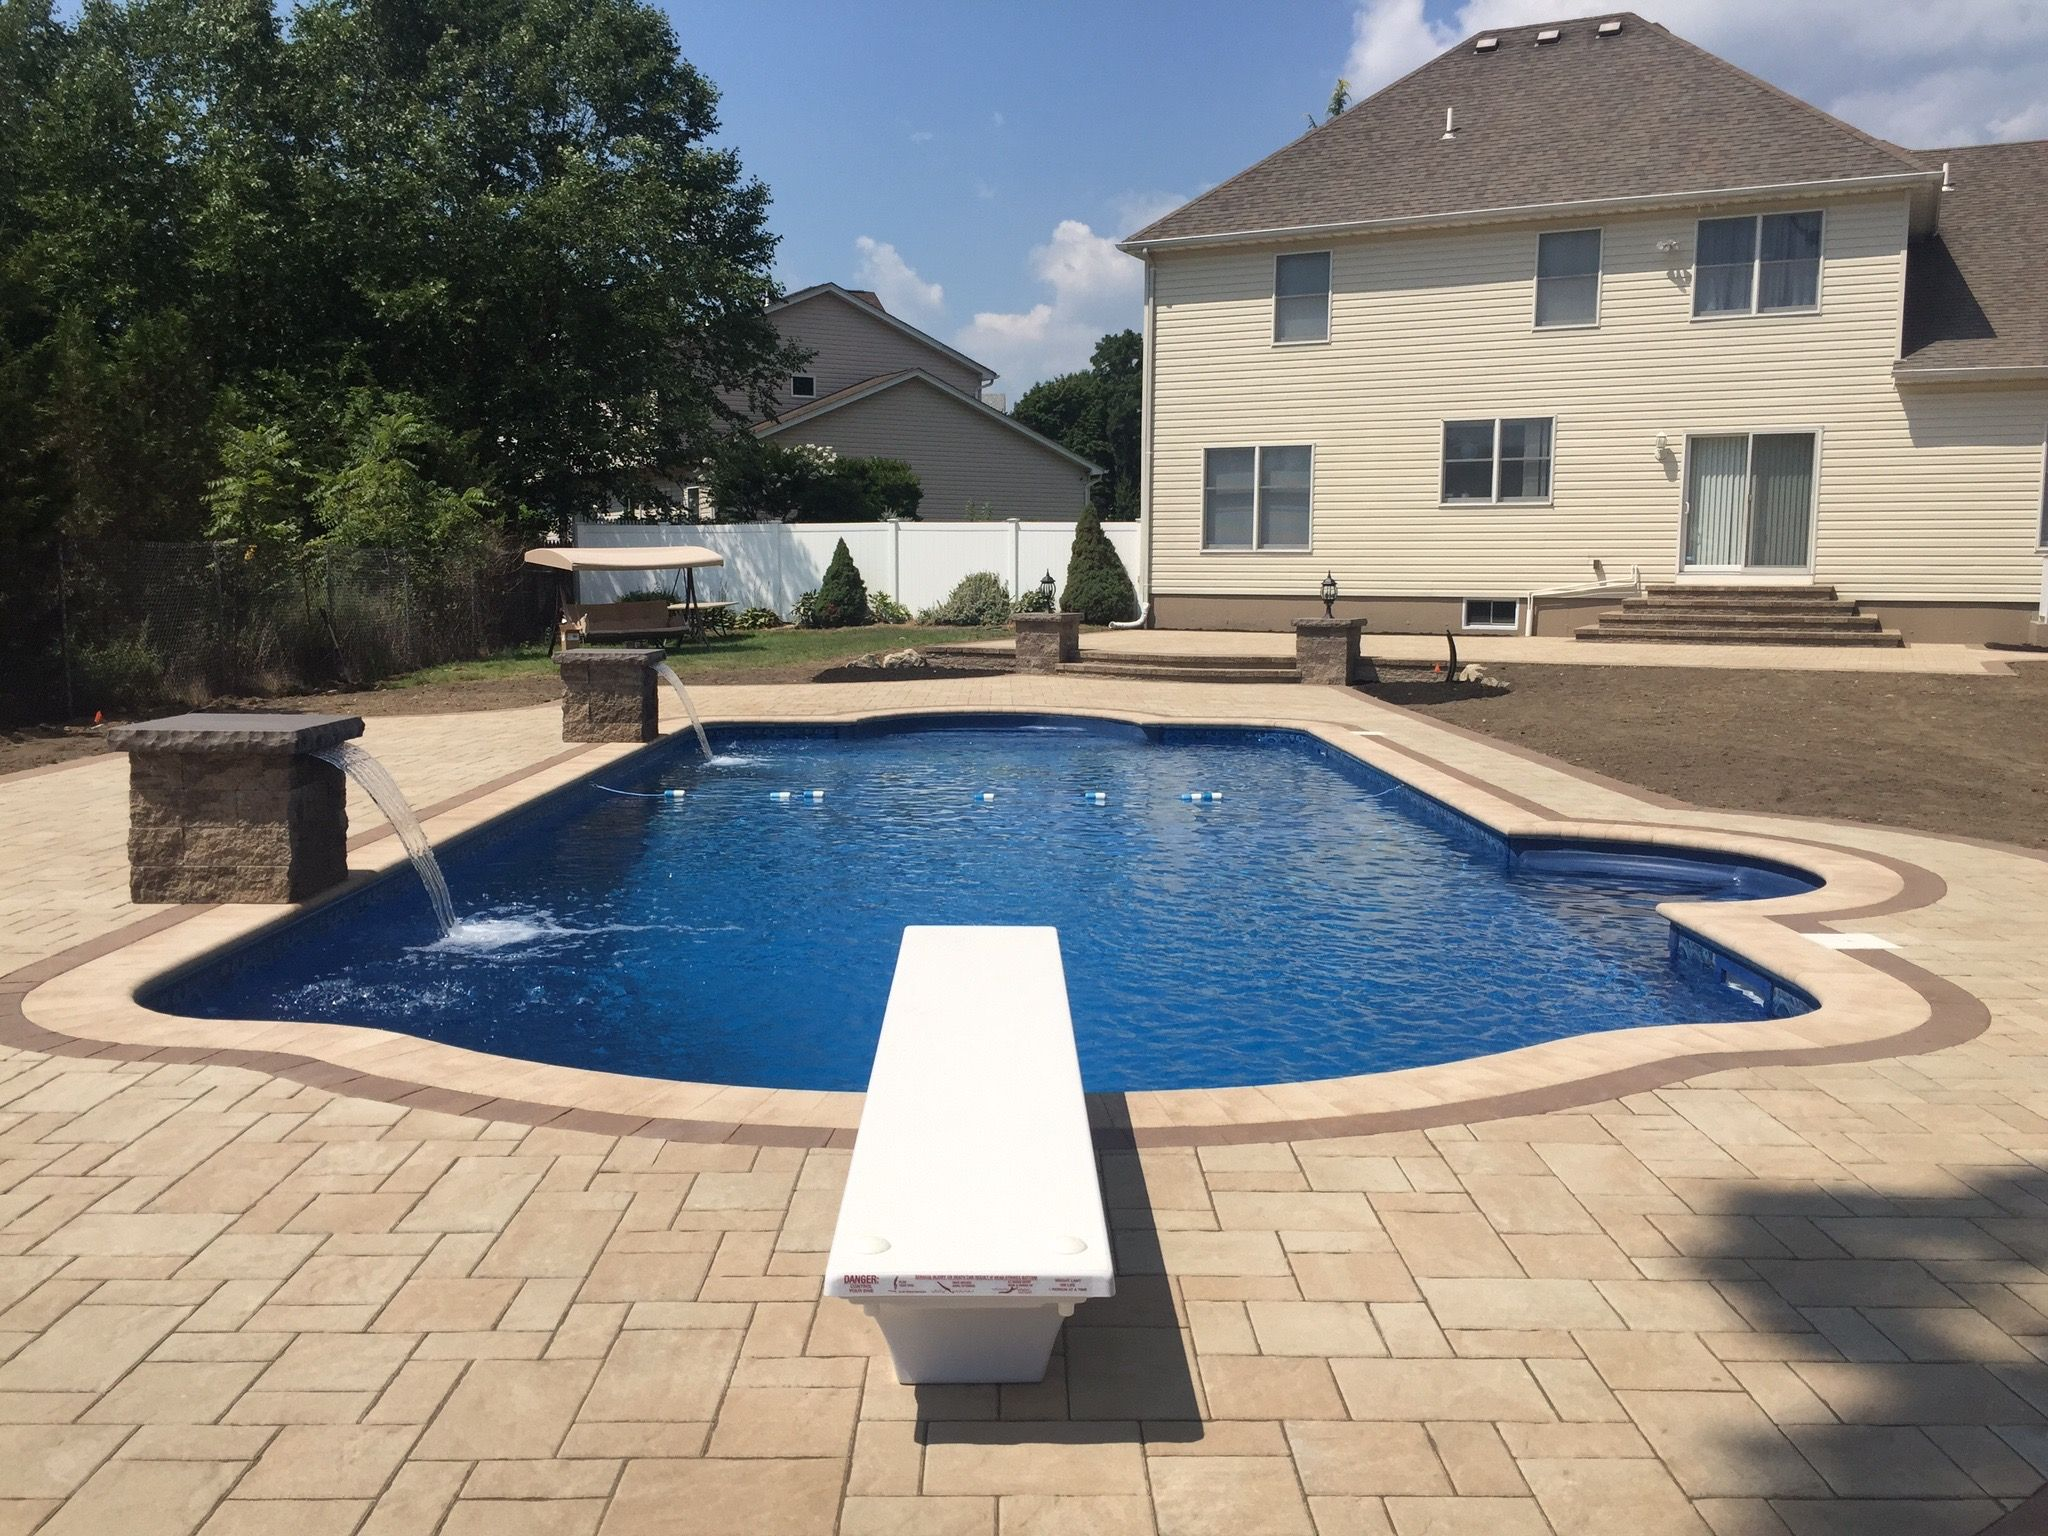 We Used @unilock Treo Pavers In Tuscany For The Patio And Pool Surround At  This